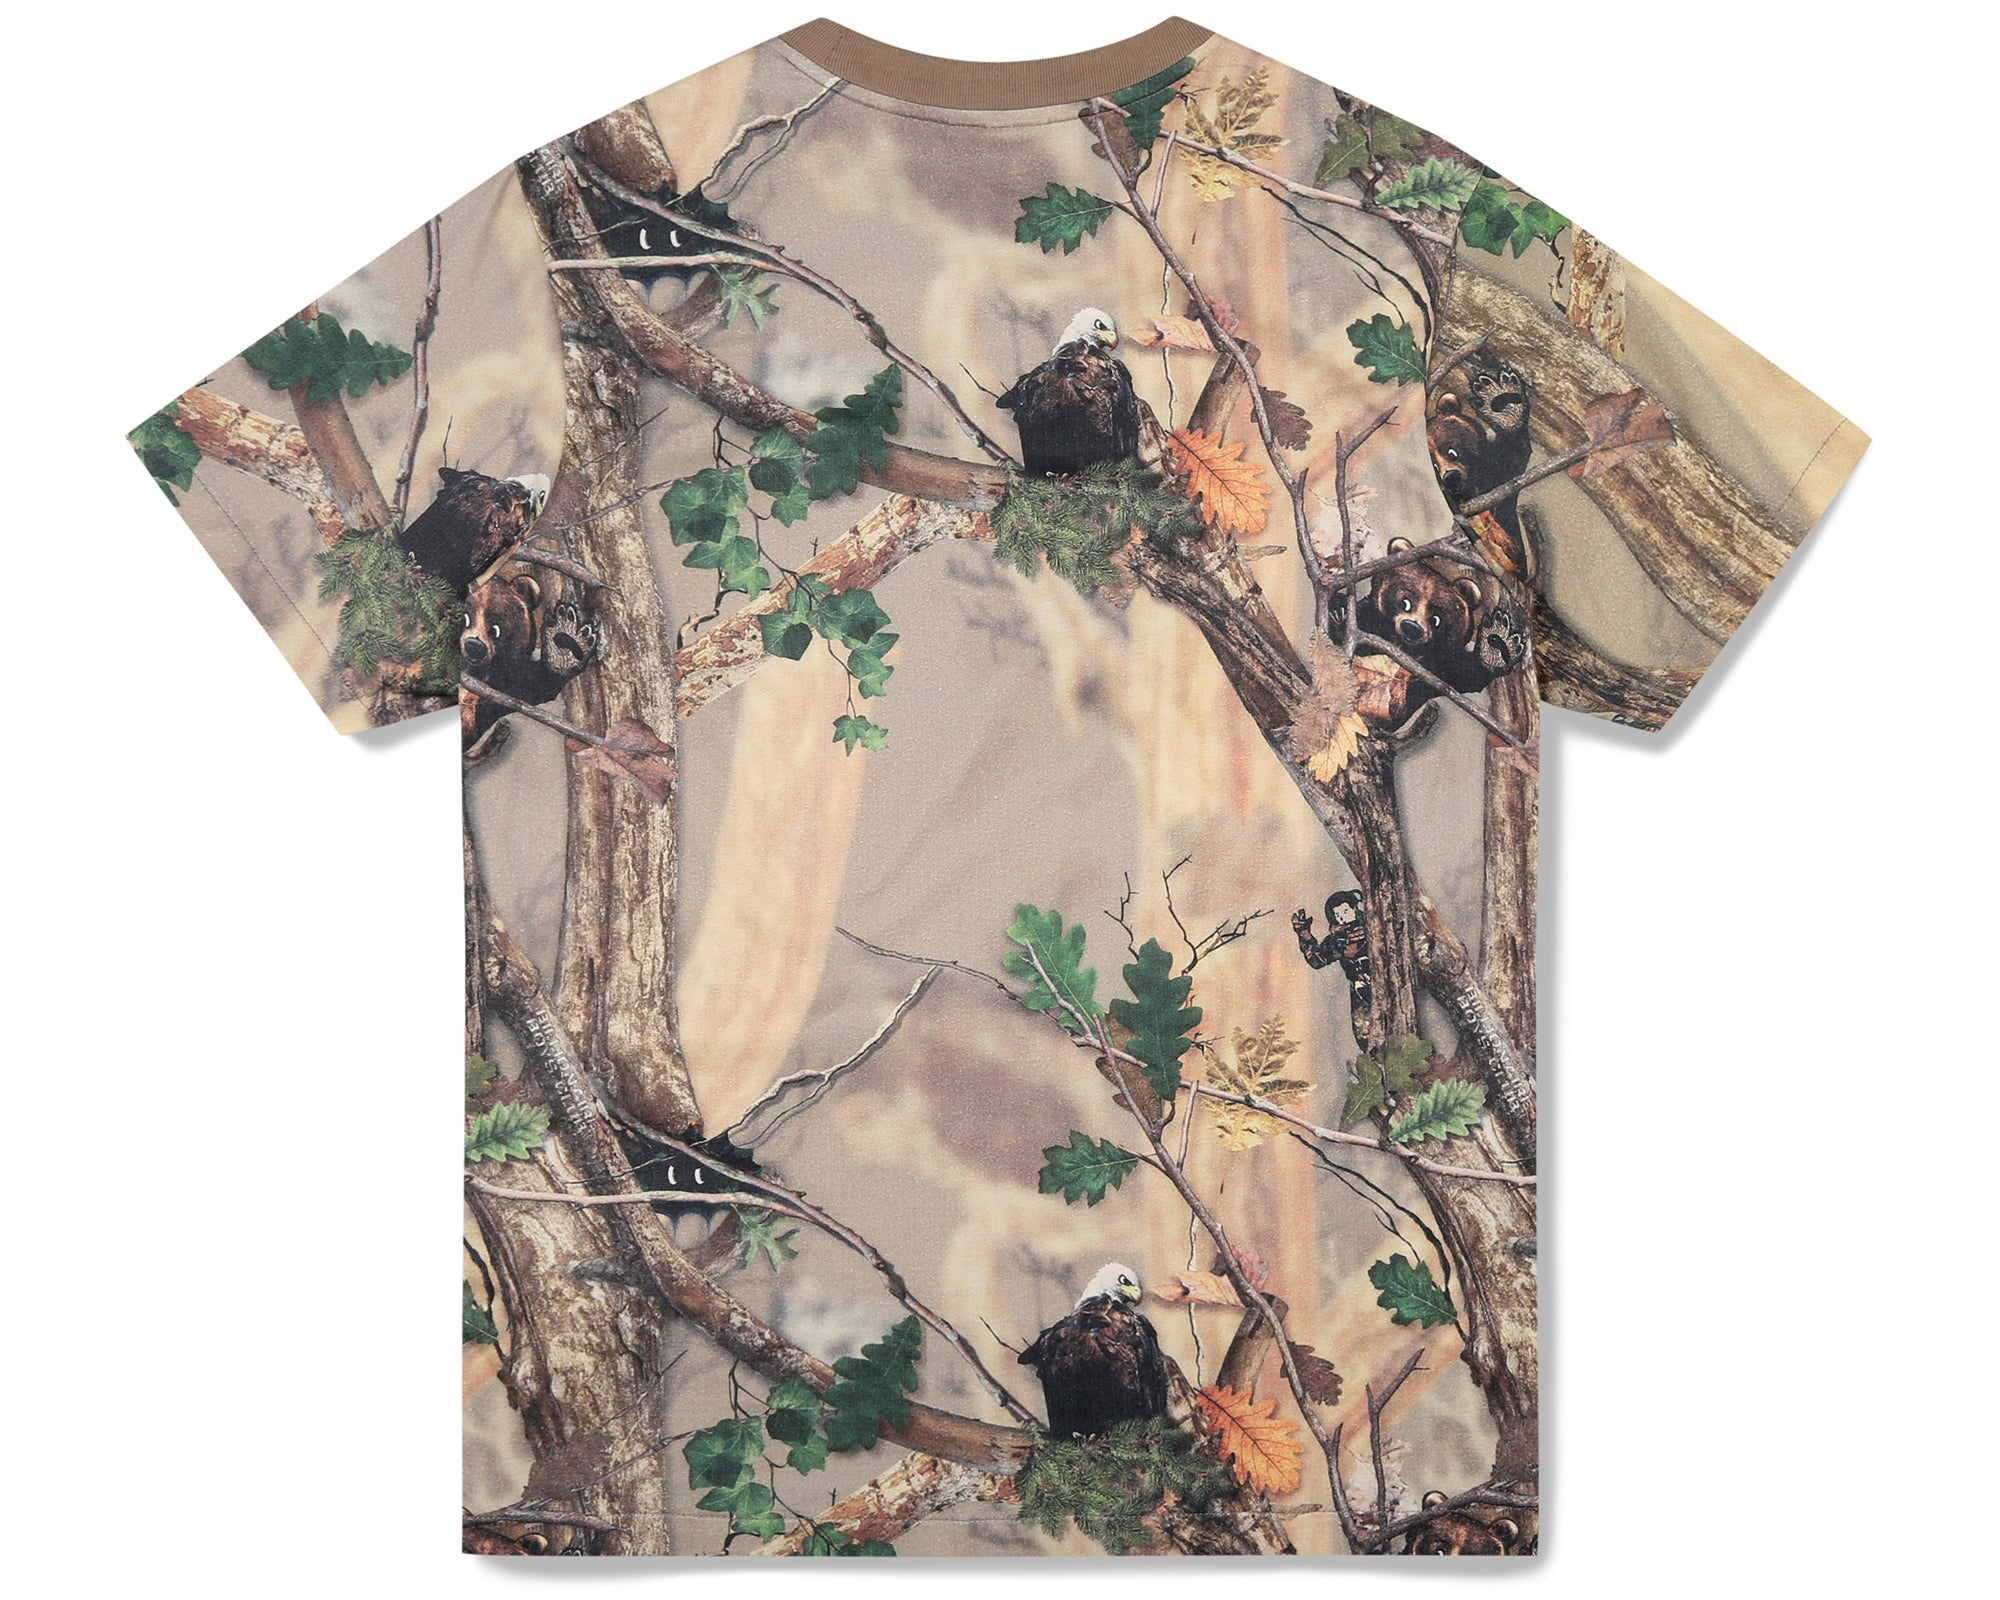 TREE CAMO ALL OVER PRINT T-SHIRT - BEIGE